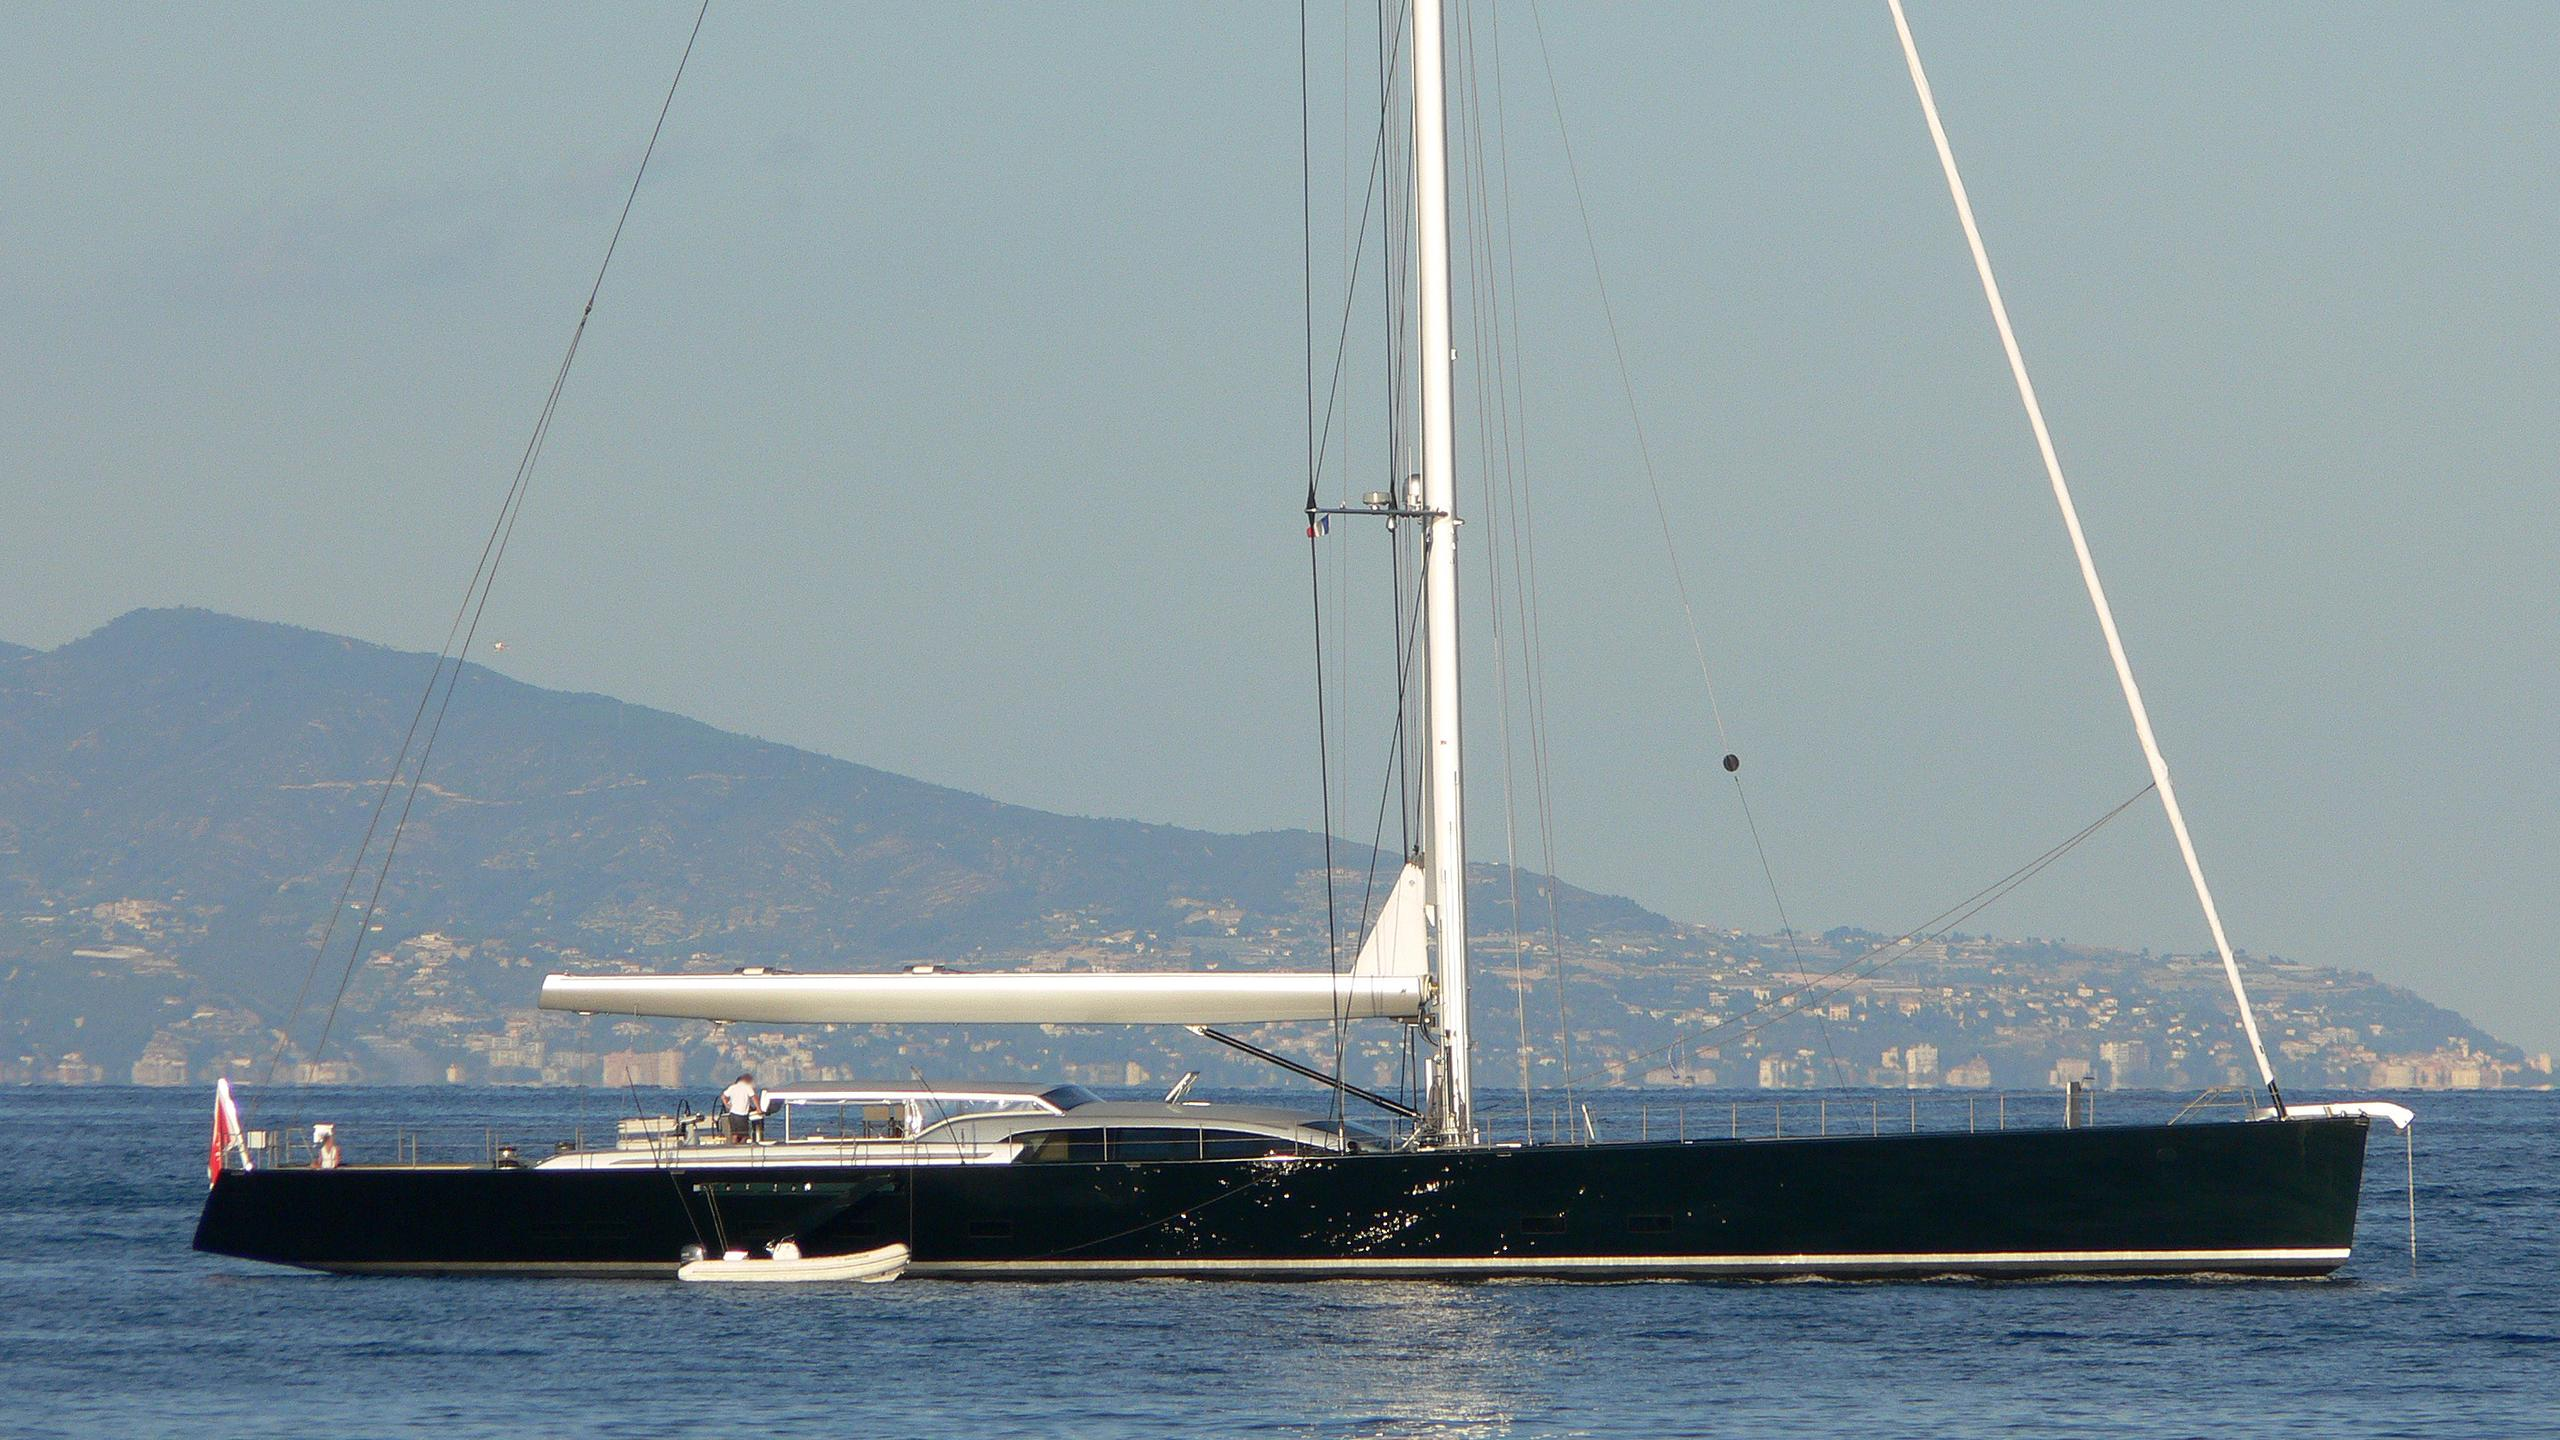 saudade-sailing-yacht-wally-2008-45m-moored-profile